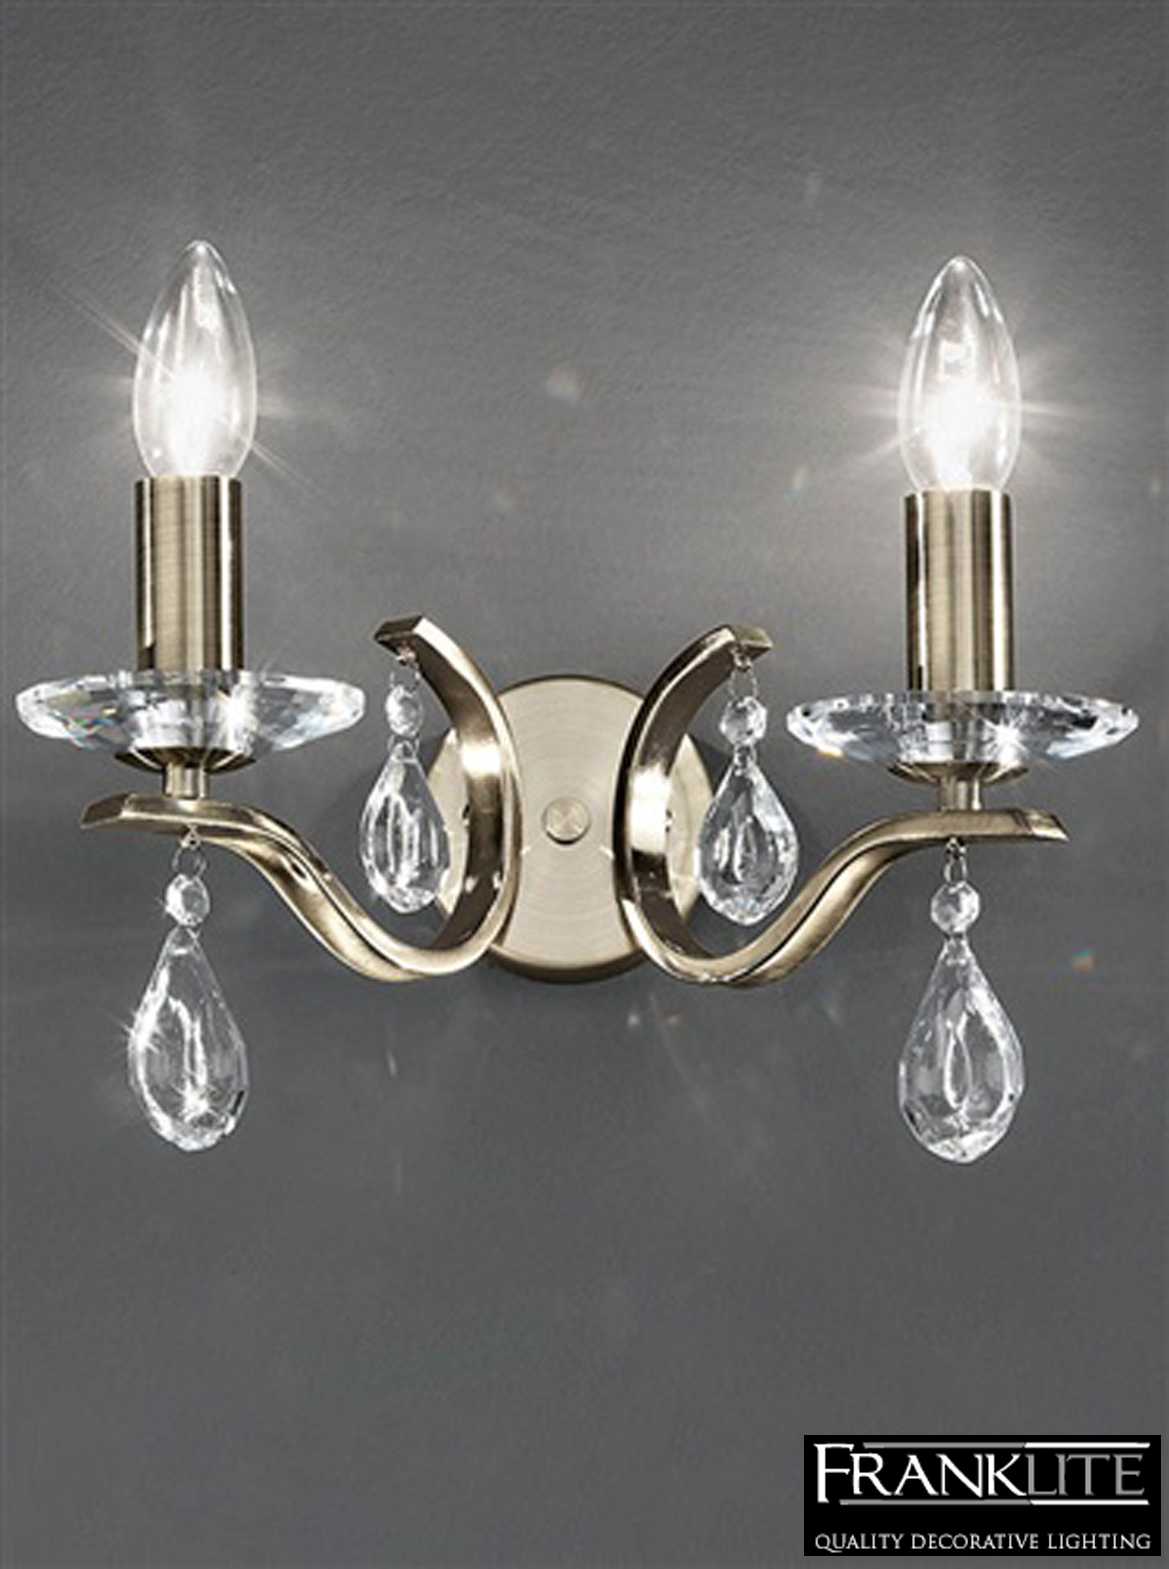 Franklite Crystal Wall Lights : Franklite Willow Crystal And Antique Bronze Twin Wall Light - FL2299/2 from Easy Lighting